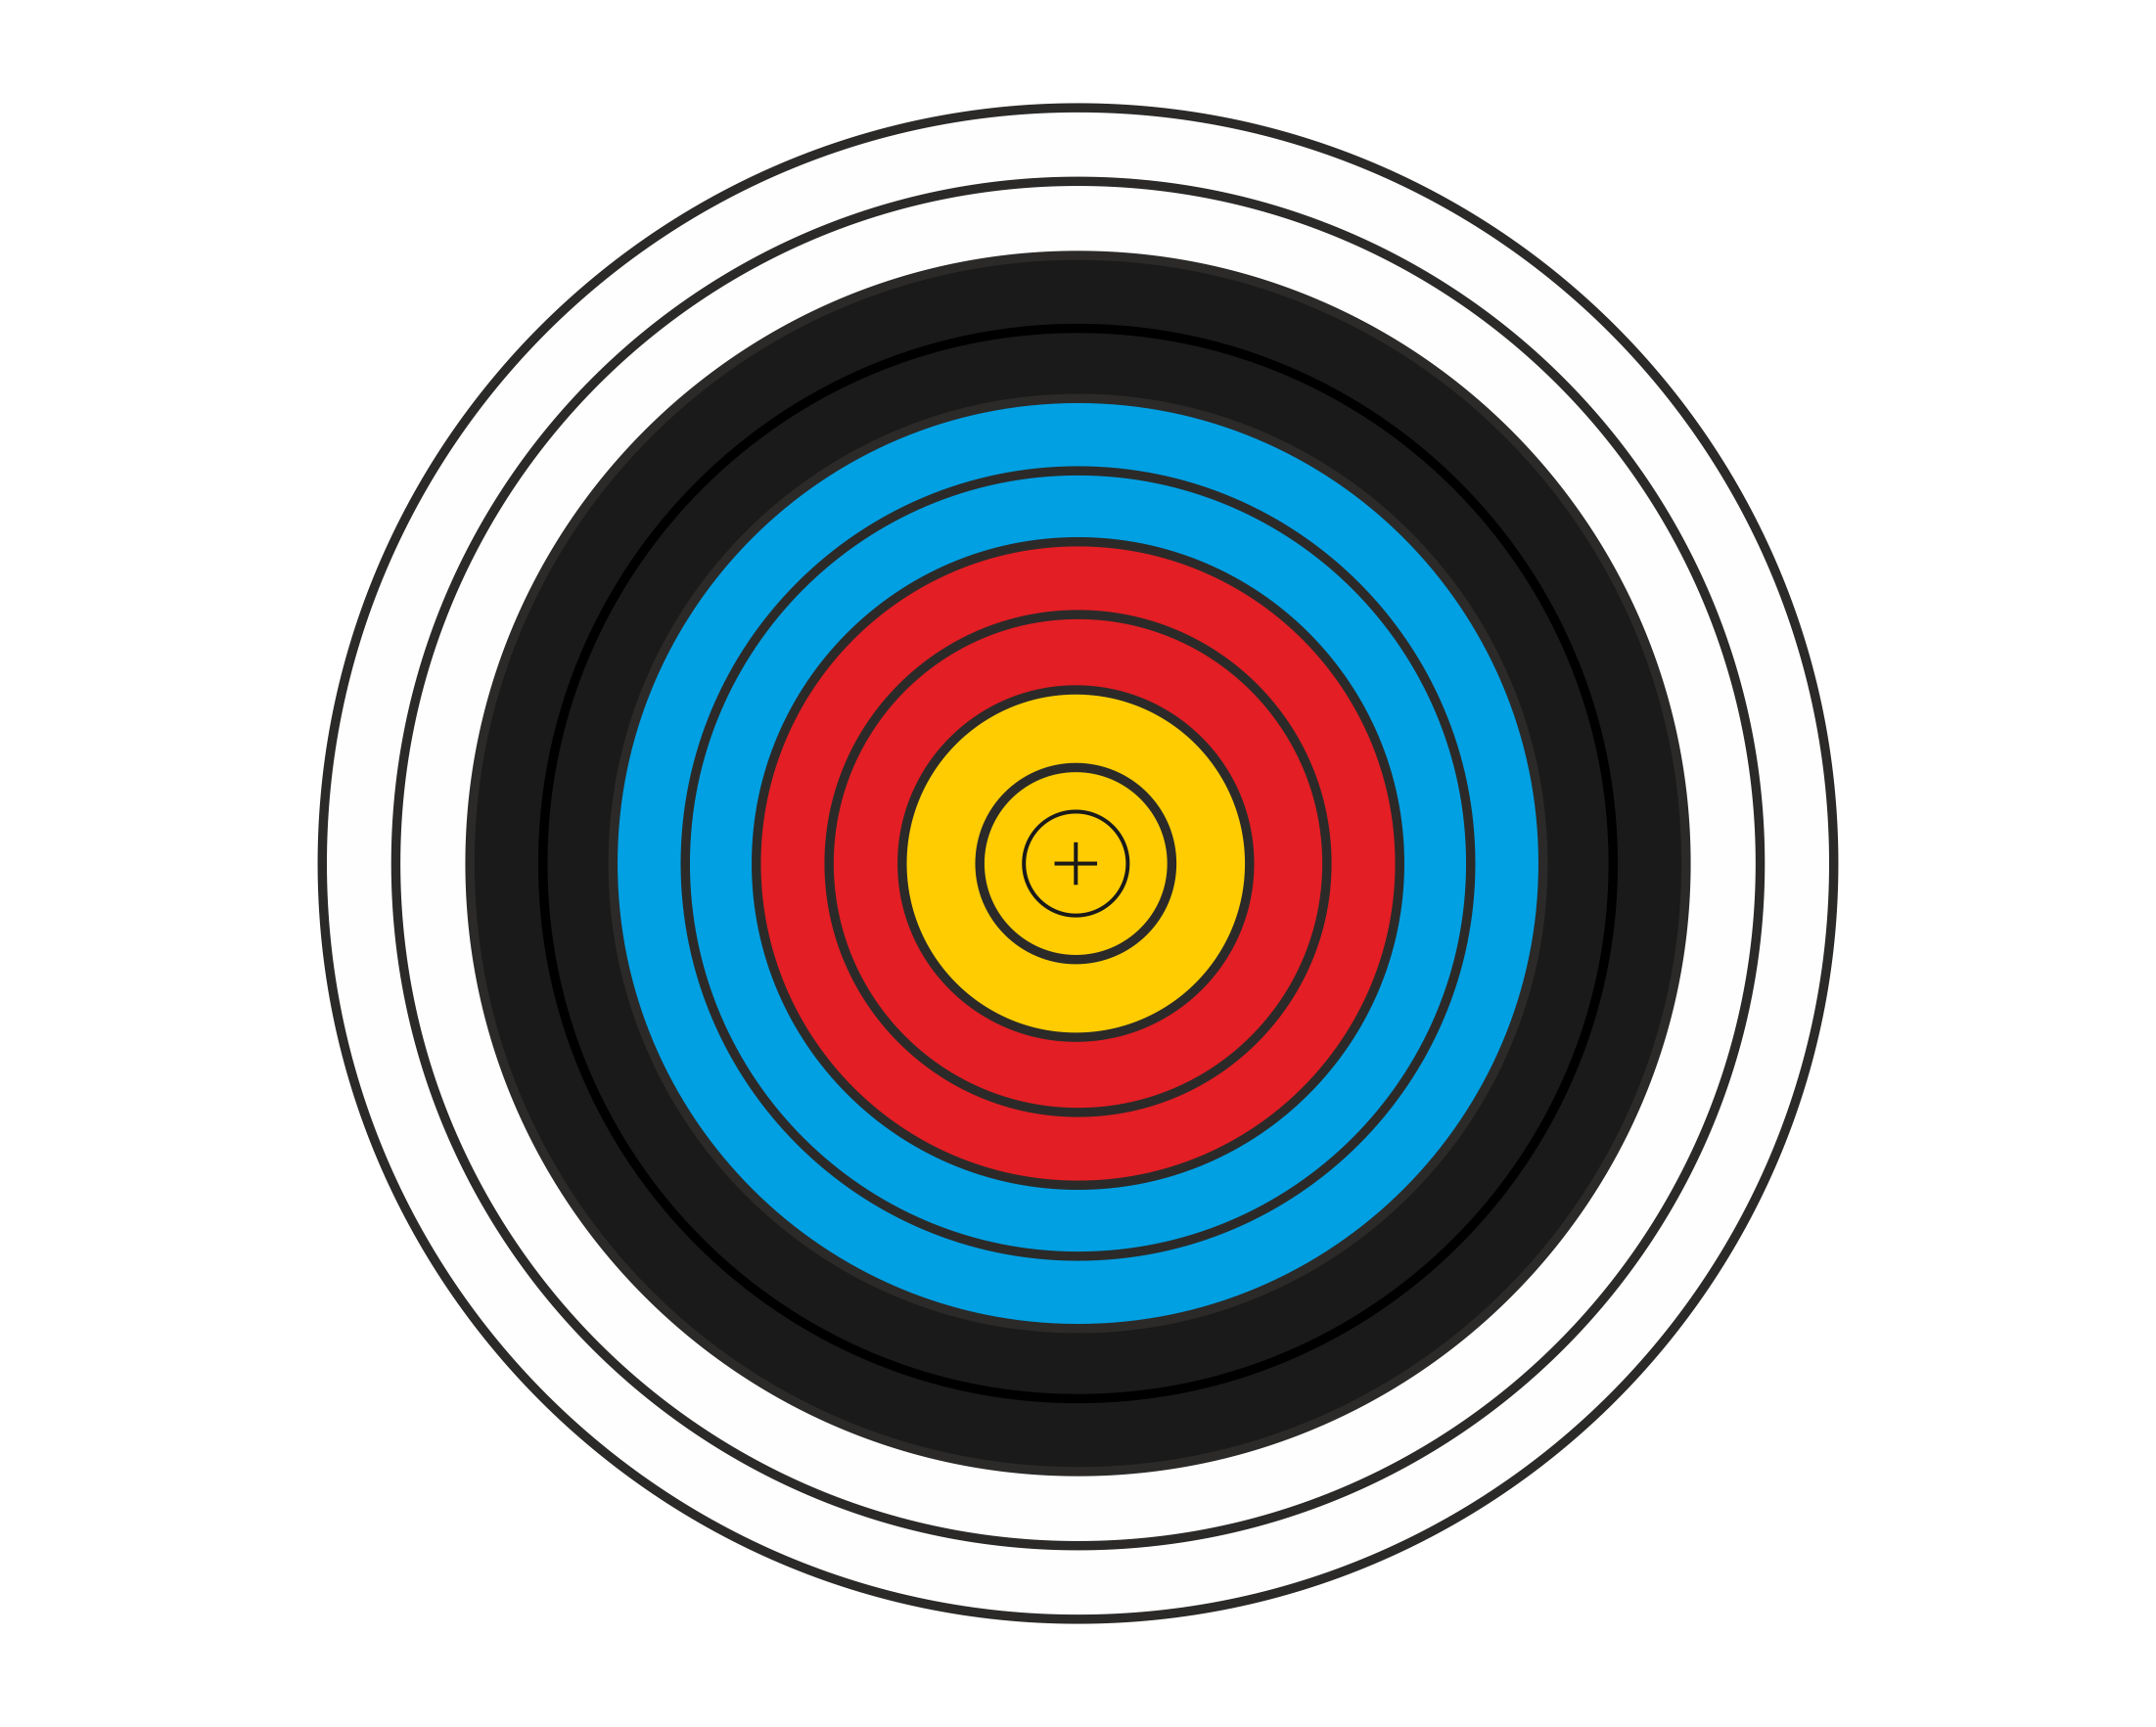 Round Target Face with gold, red, blue, black, white rings from the centre outwards